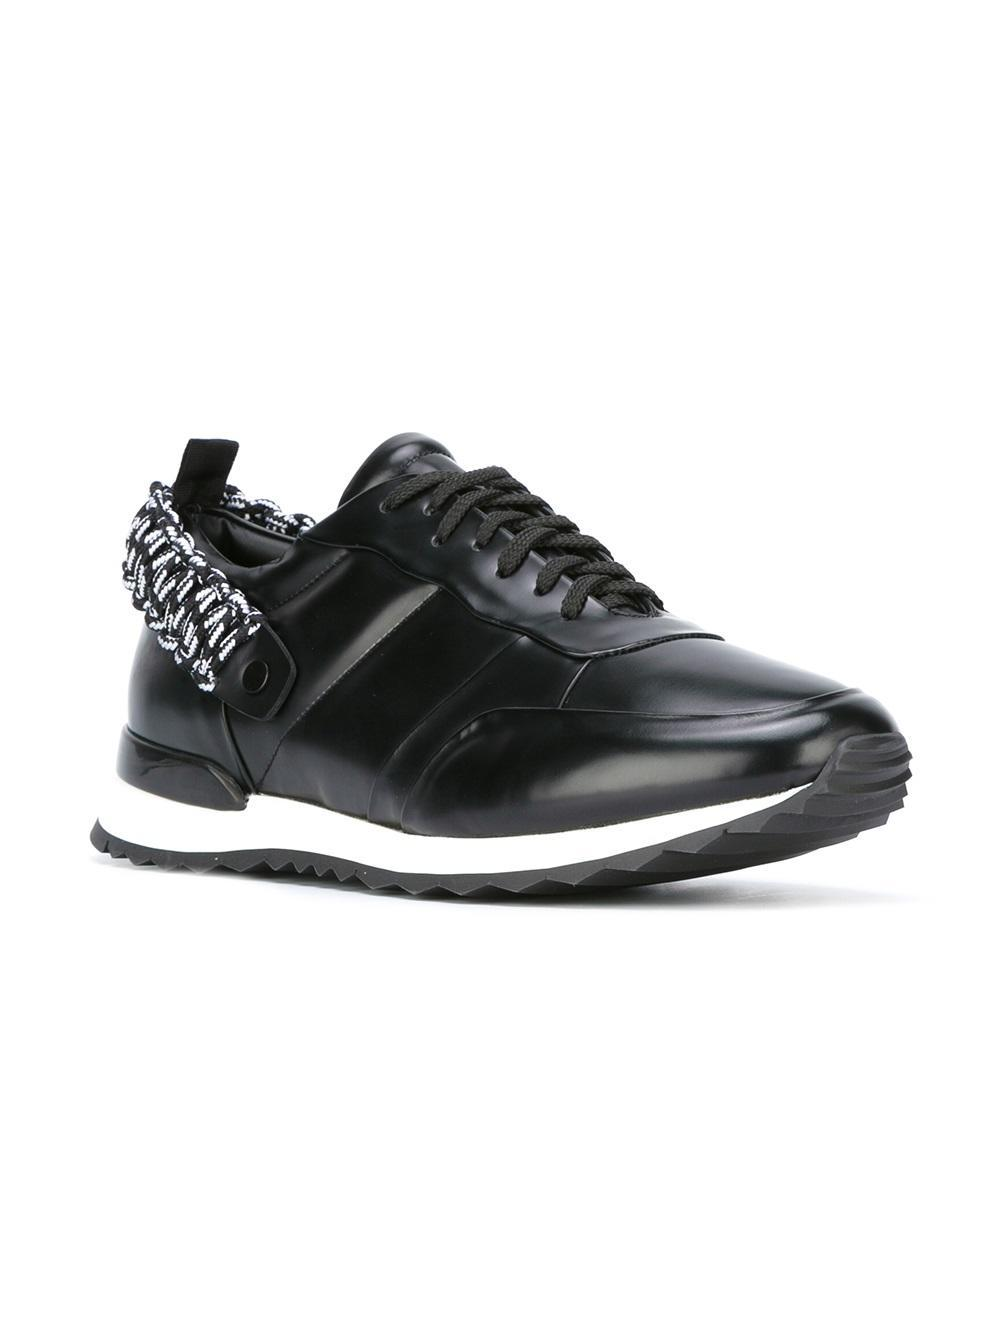 Dada Mp Shoes For Sale